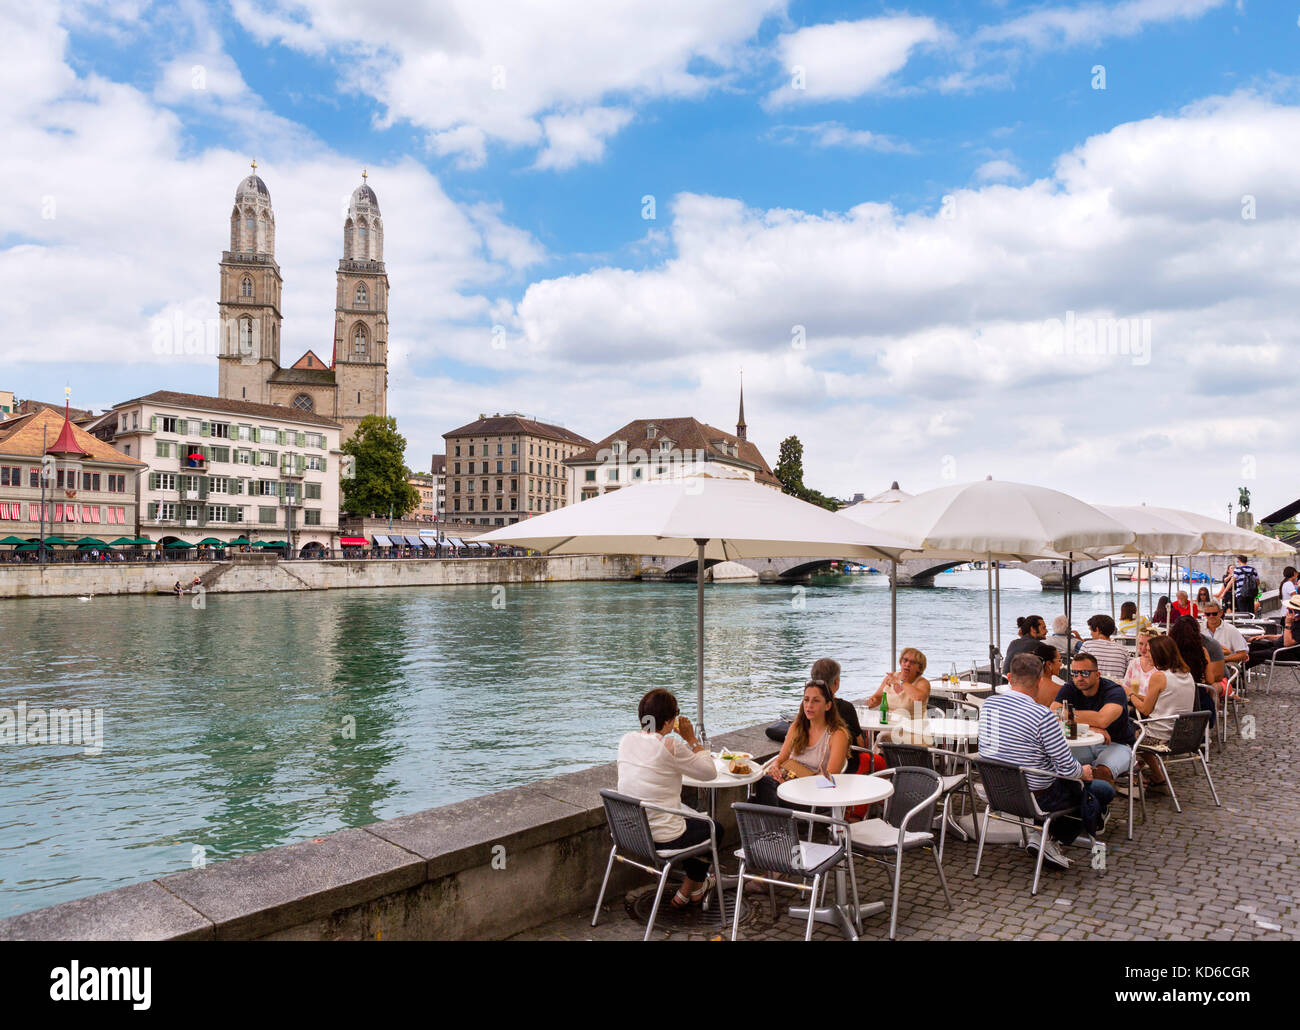 Cafe on the banks of the River Limmat looking towards the Grossmünster, Zürich, Lake Zurich, Switzerland - Stock Image